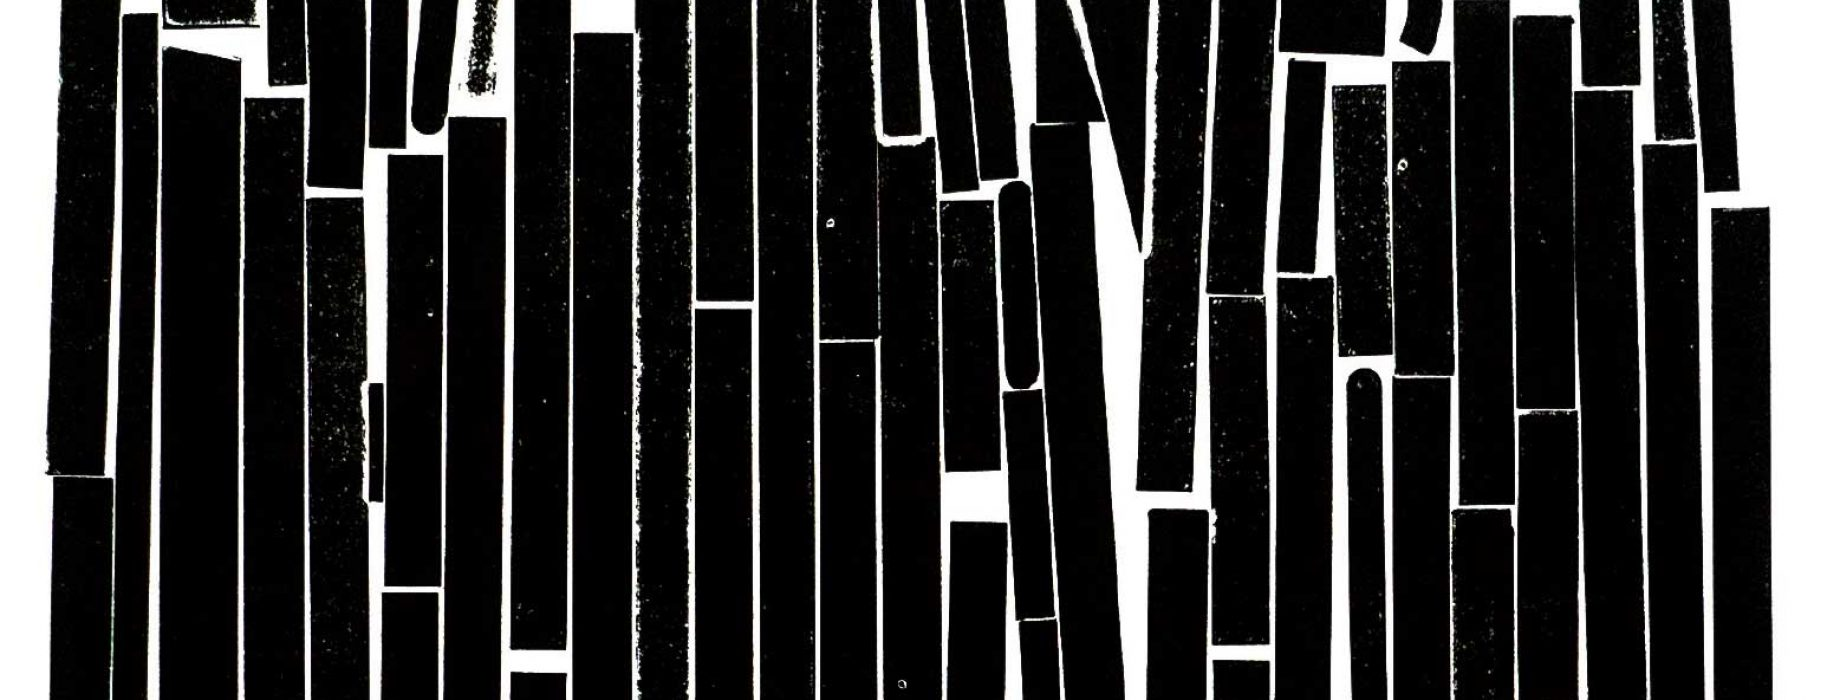 Abstract black and white block print